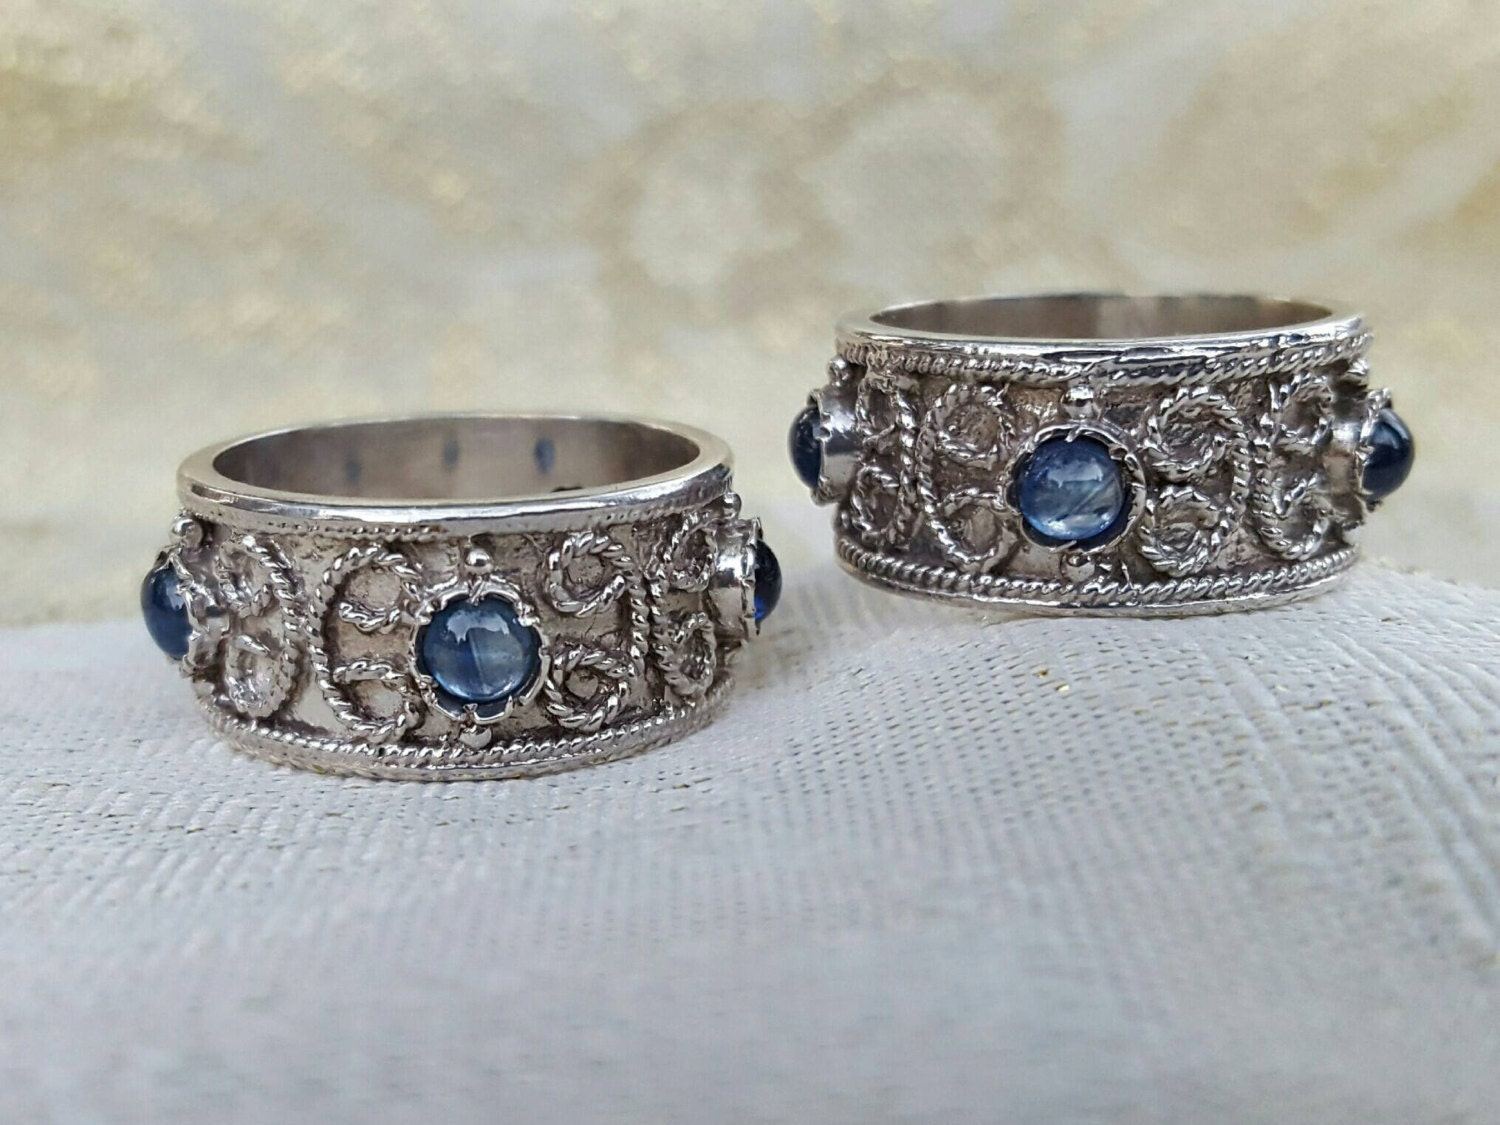 Italian Renaissance Wedding Bands Set Matching His And Hers. Baby Hand Rings. Little Hand Wedding Rings. 15 Carat Engagement Rings. Sandstone Finish Wedding Rings. Papers Rings. Engaged Kim Kardashian Wedding Rings. Simple Design Engagement Rings. Line Art Wedding Rings